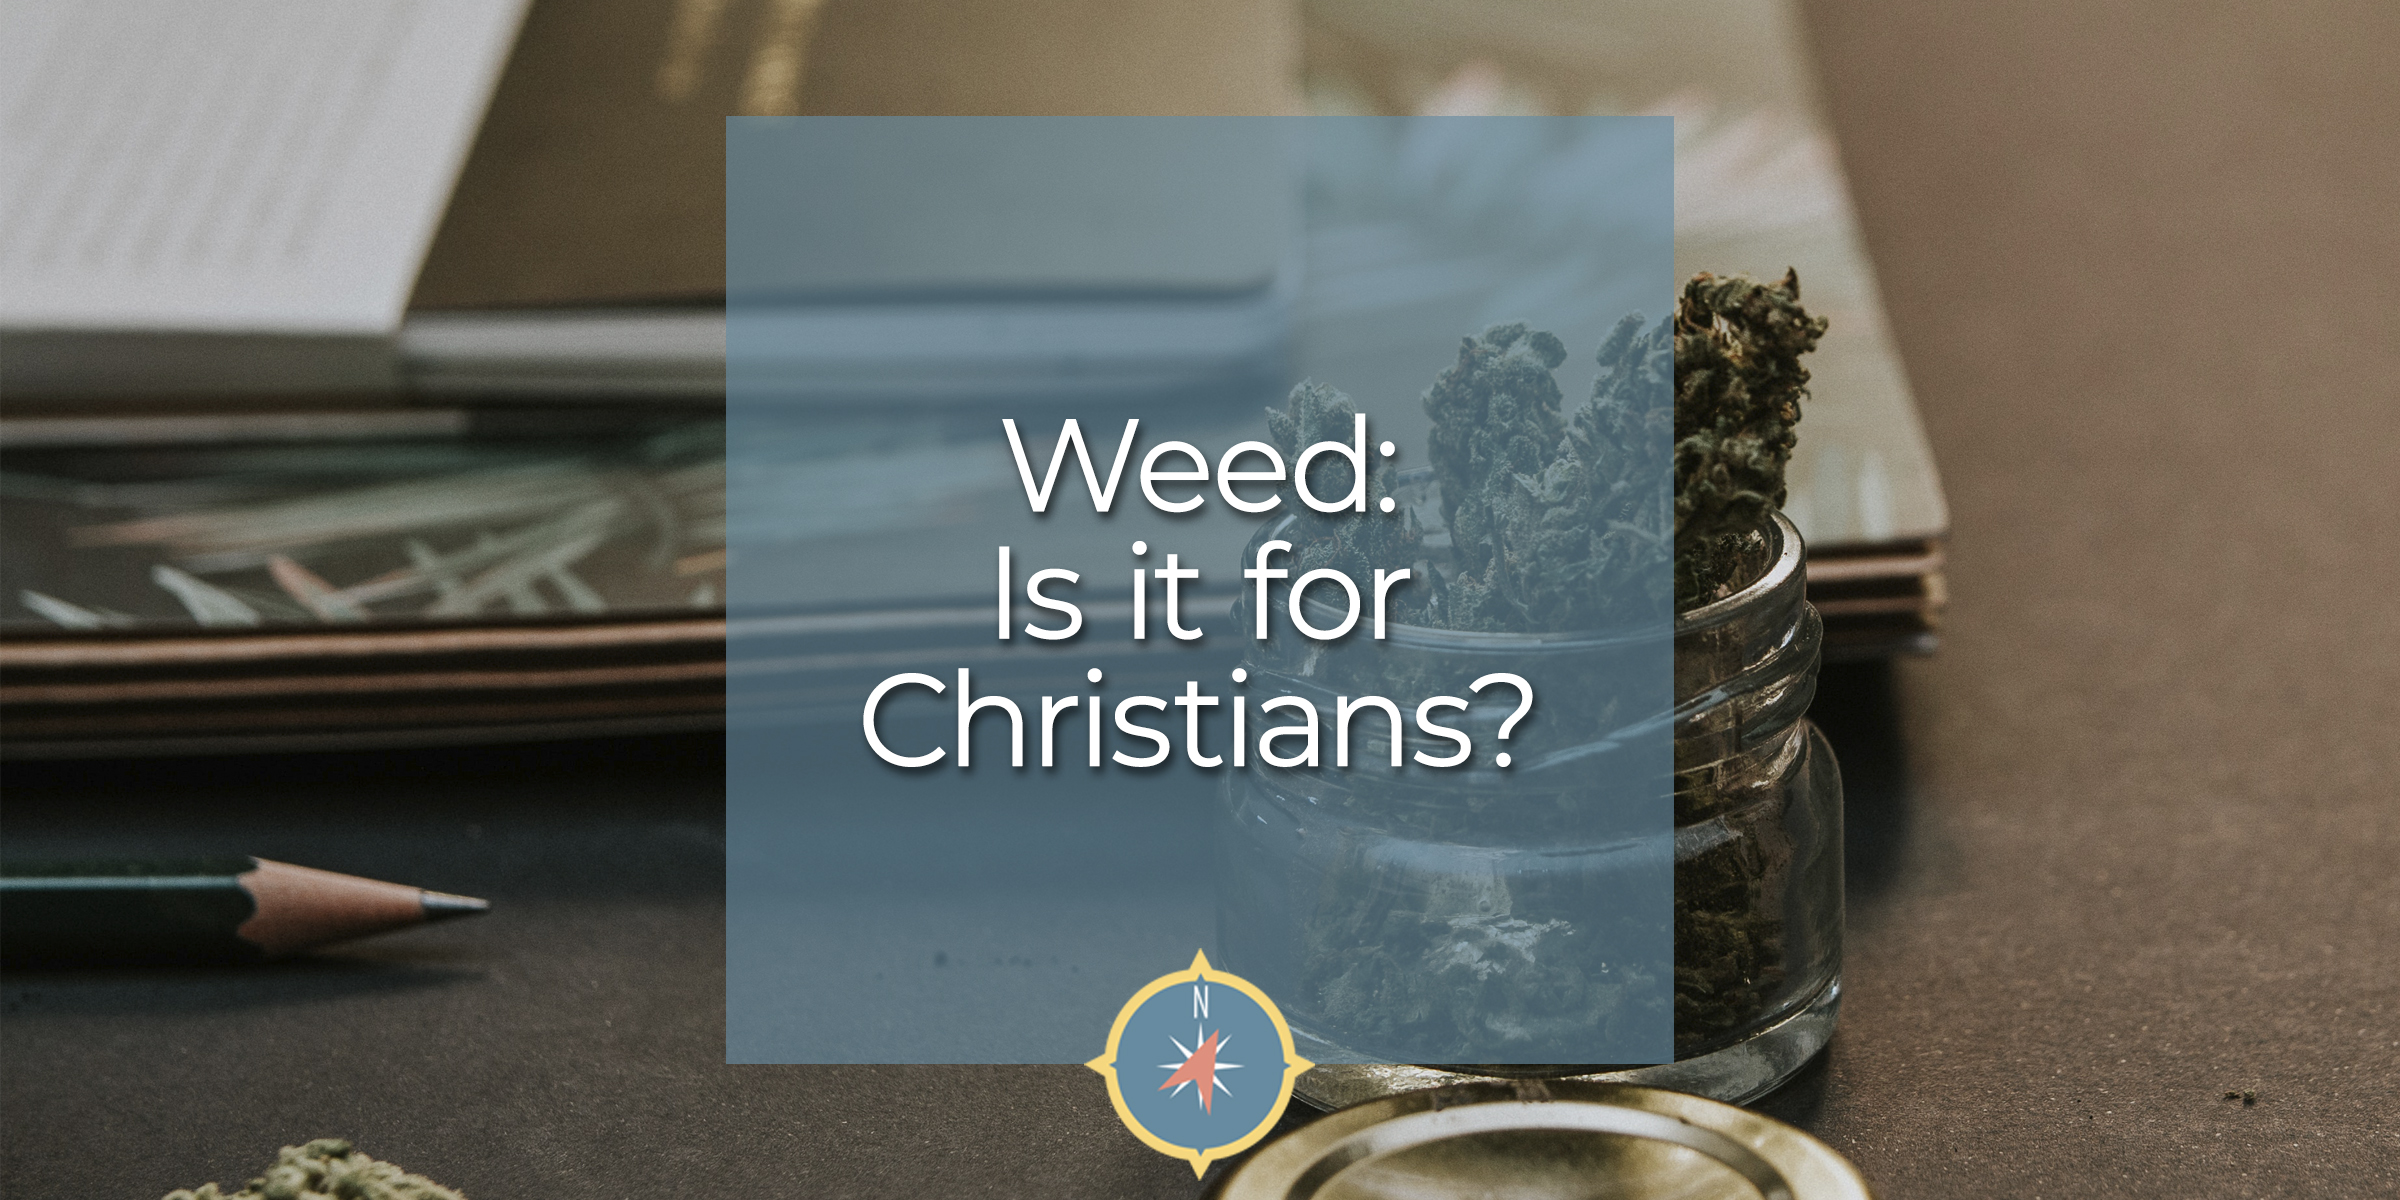 Weed: Is It for Christians?